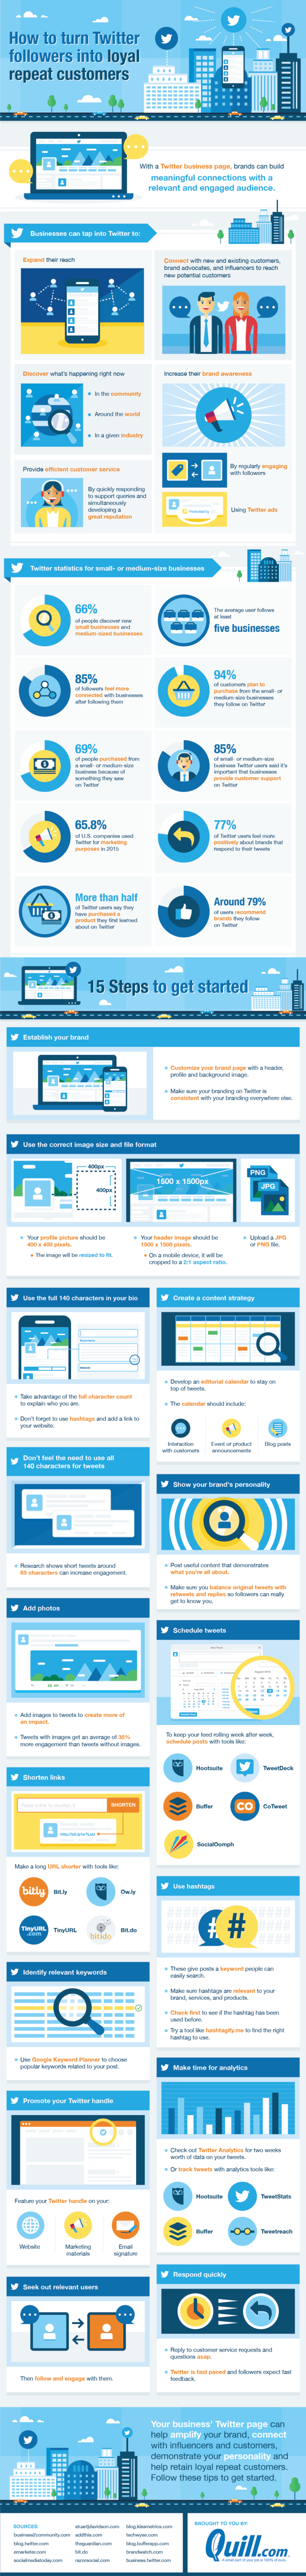 How To Turn Twitter Followers Into Loyal Repeat Customers #Infographic